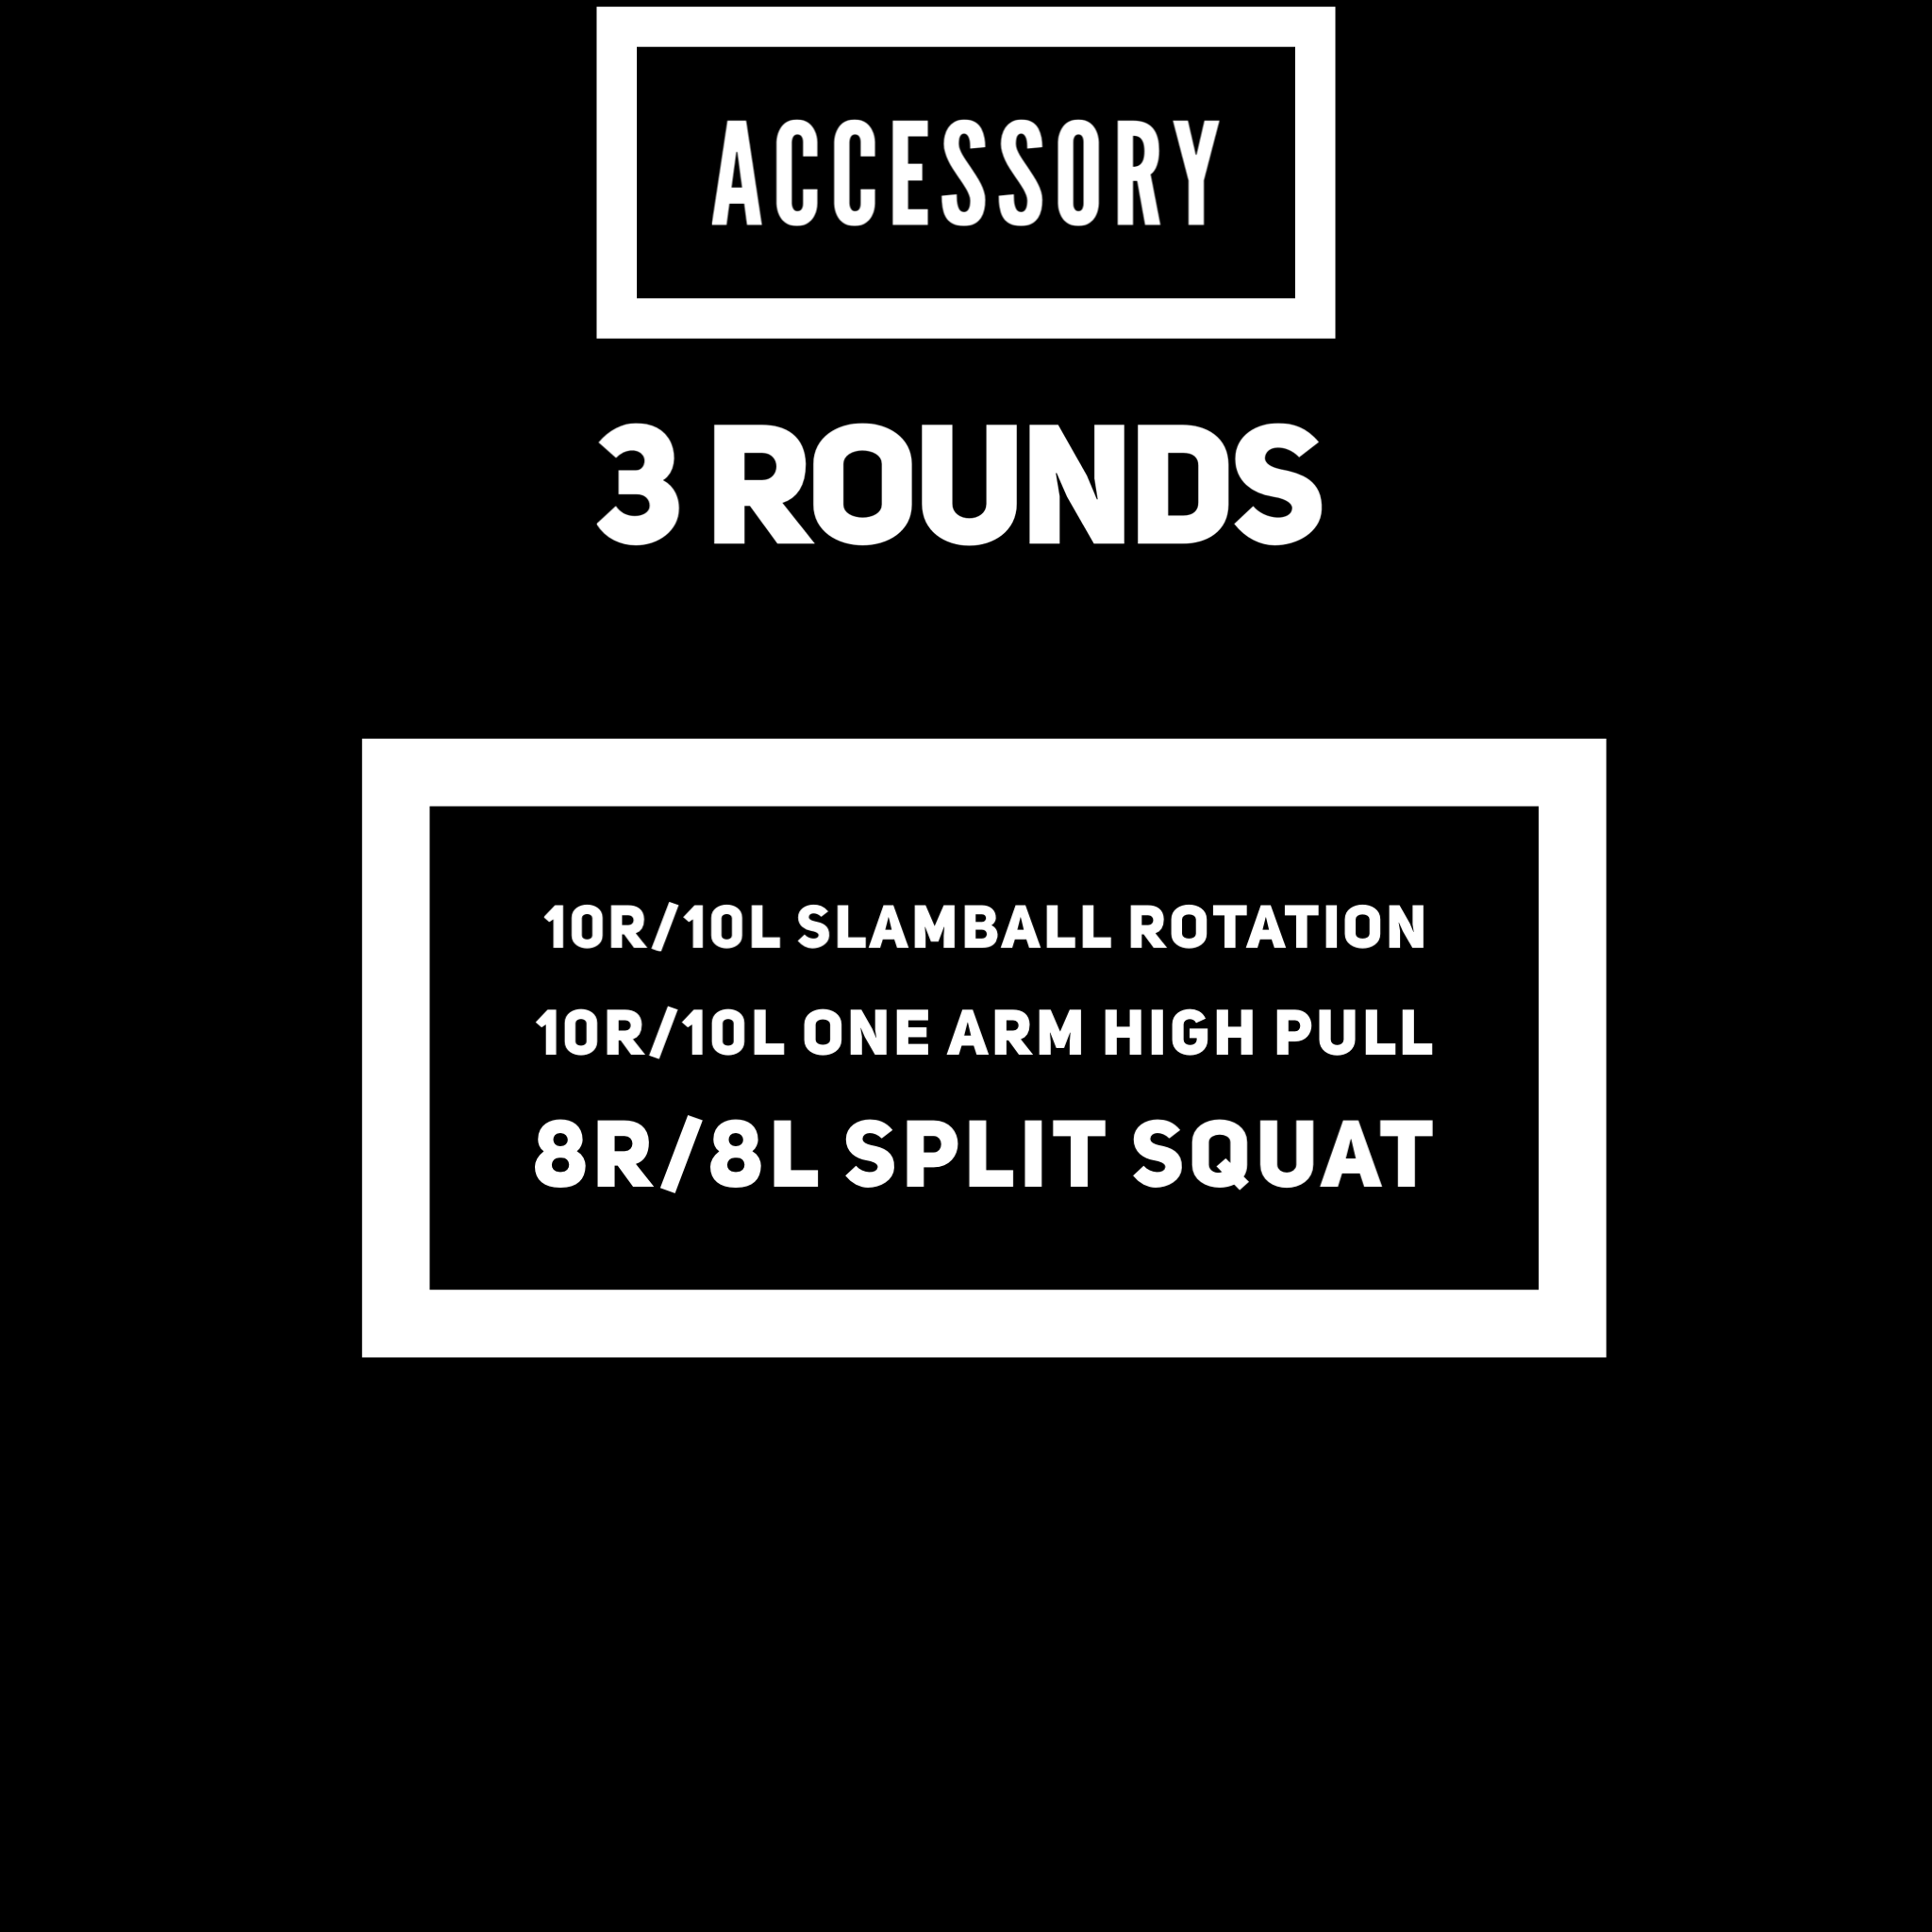 slamball @ 40/20... 40 goes against the cinder block walls.  Break out the light kettlebells or dumbbells for the high pulls.   Increase the weight on the split squat by 5-10.